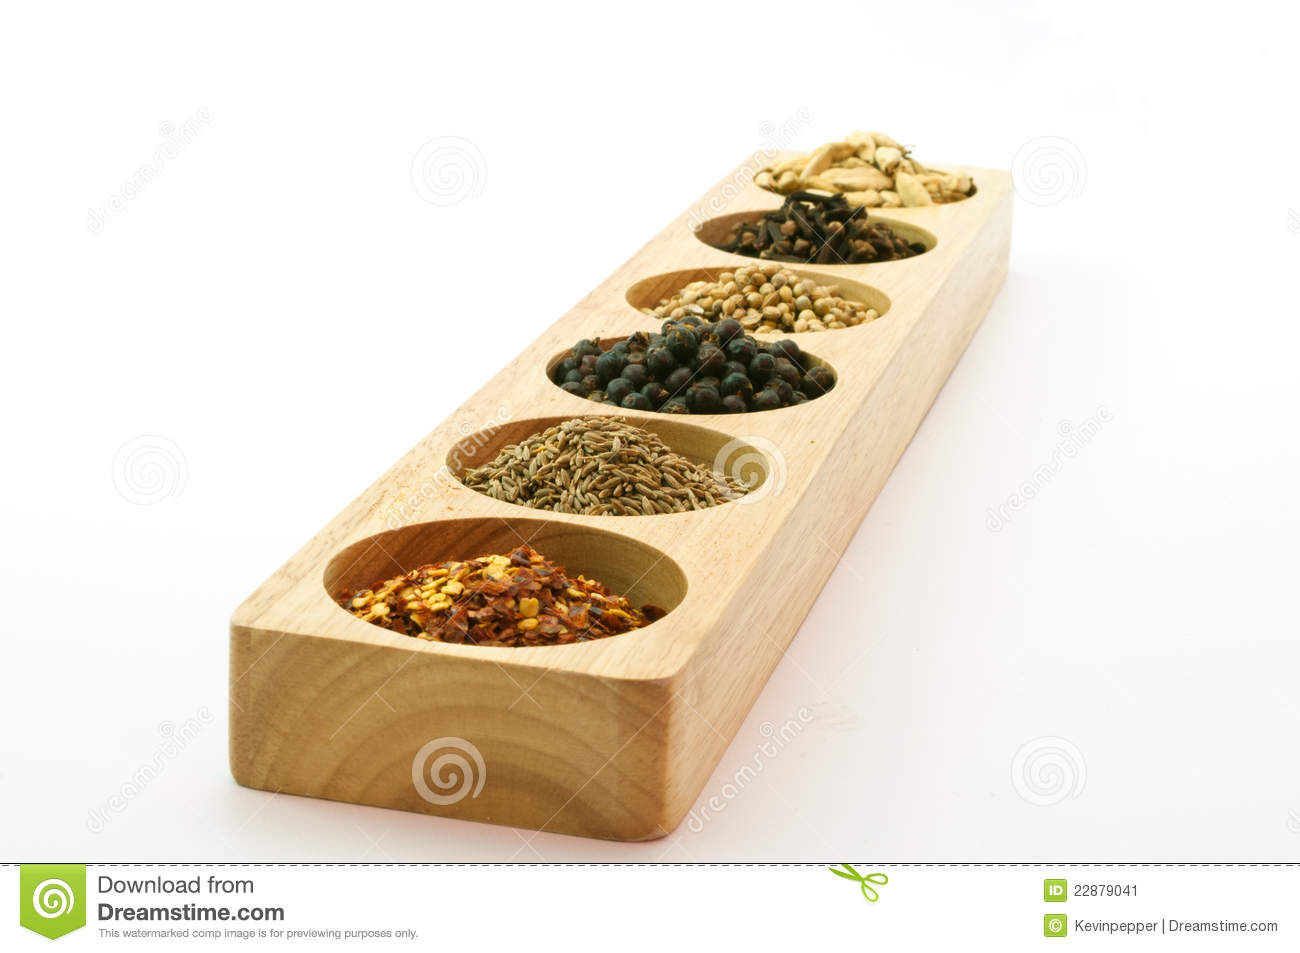 Wooden Spice Rack Wooden spice rack filled with